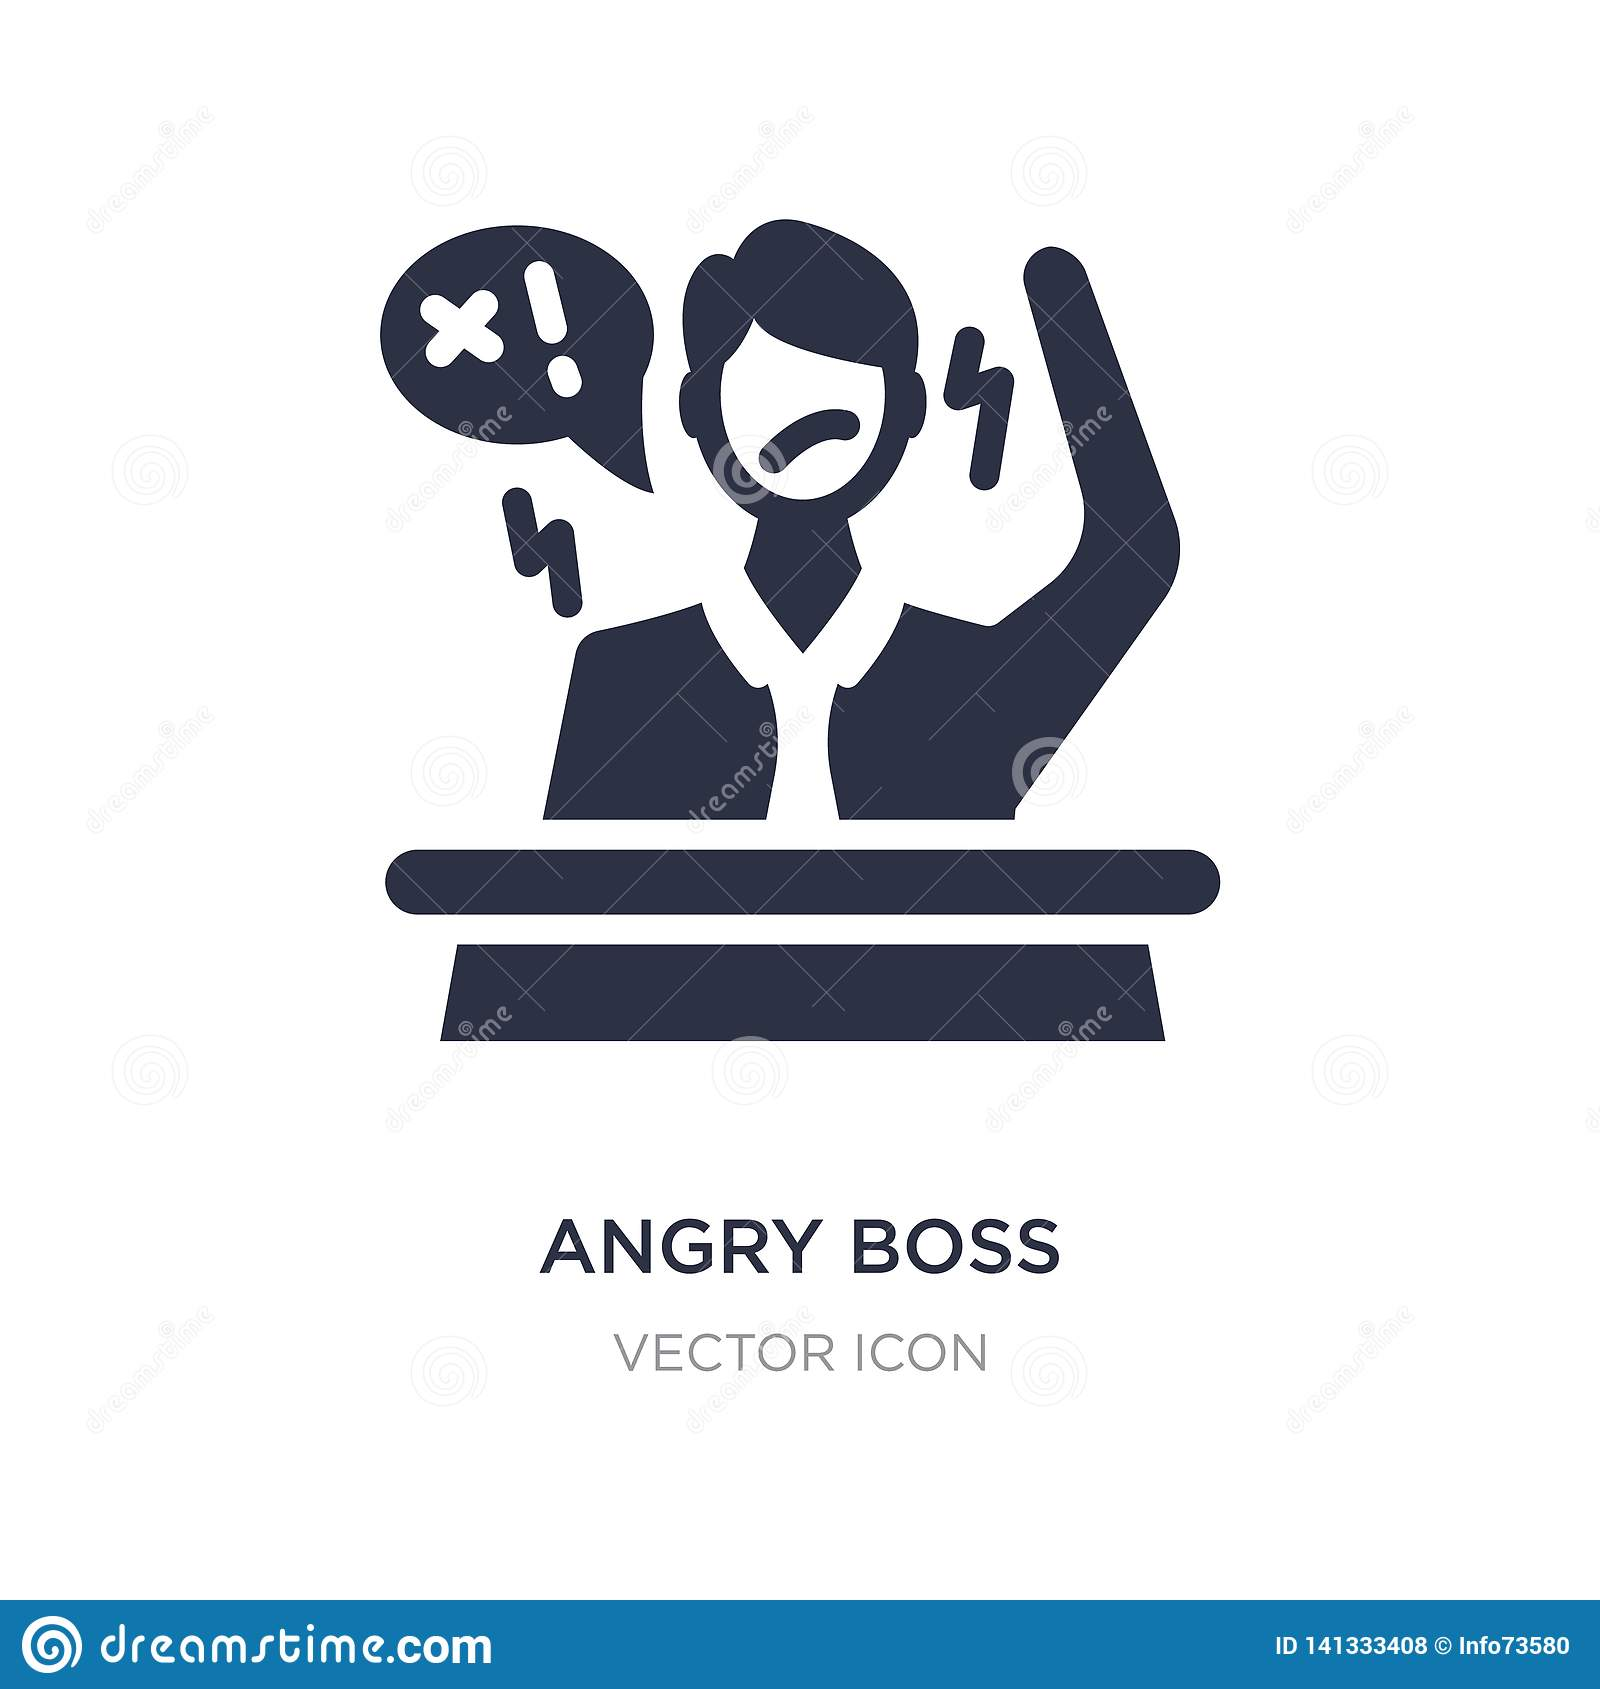 angry boss icon on white background. Simple element illustration from Business concept